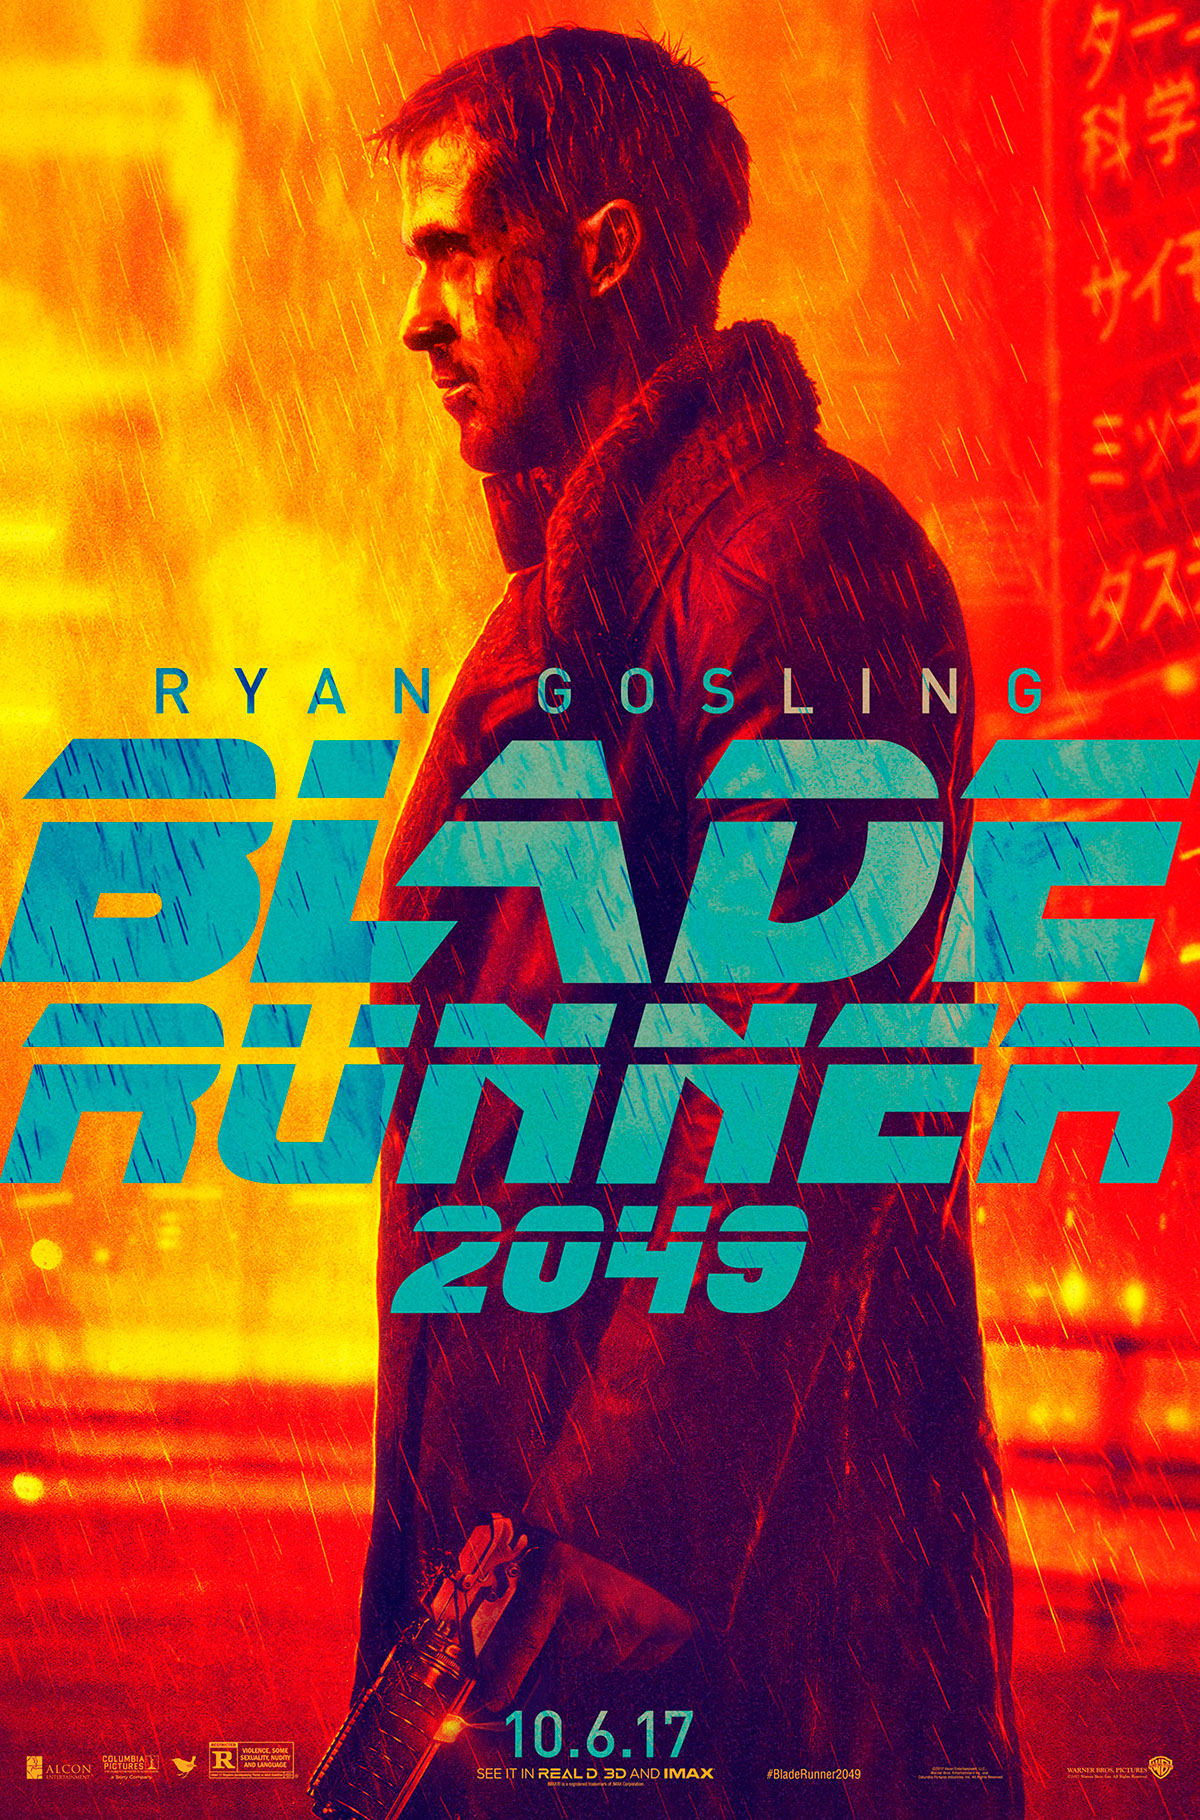 Behind the Art Direction & Brand Identity of Blade Runner 2049